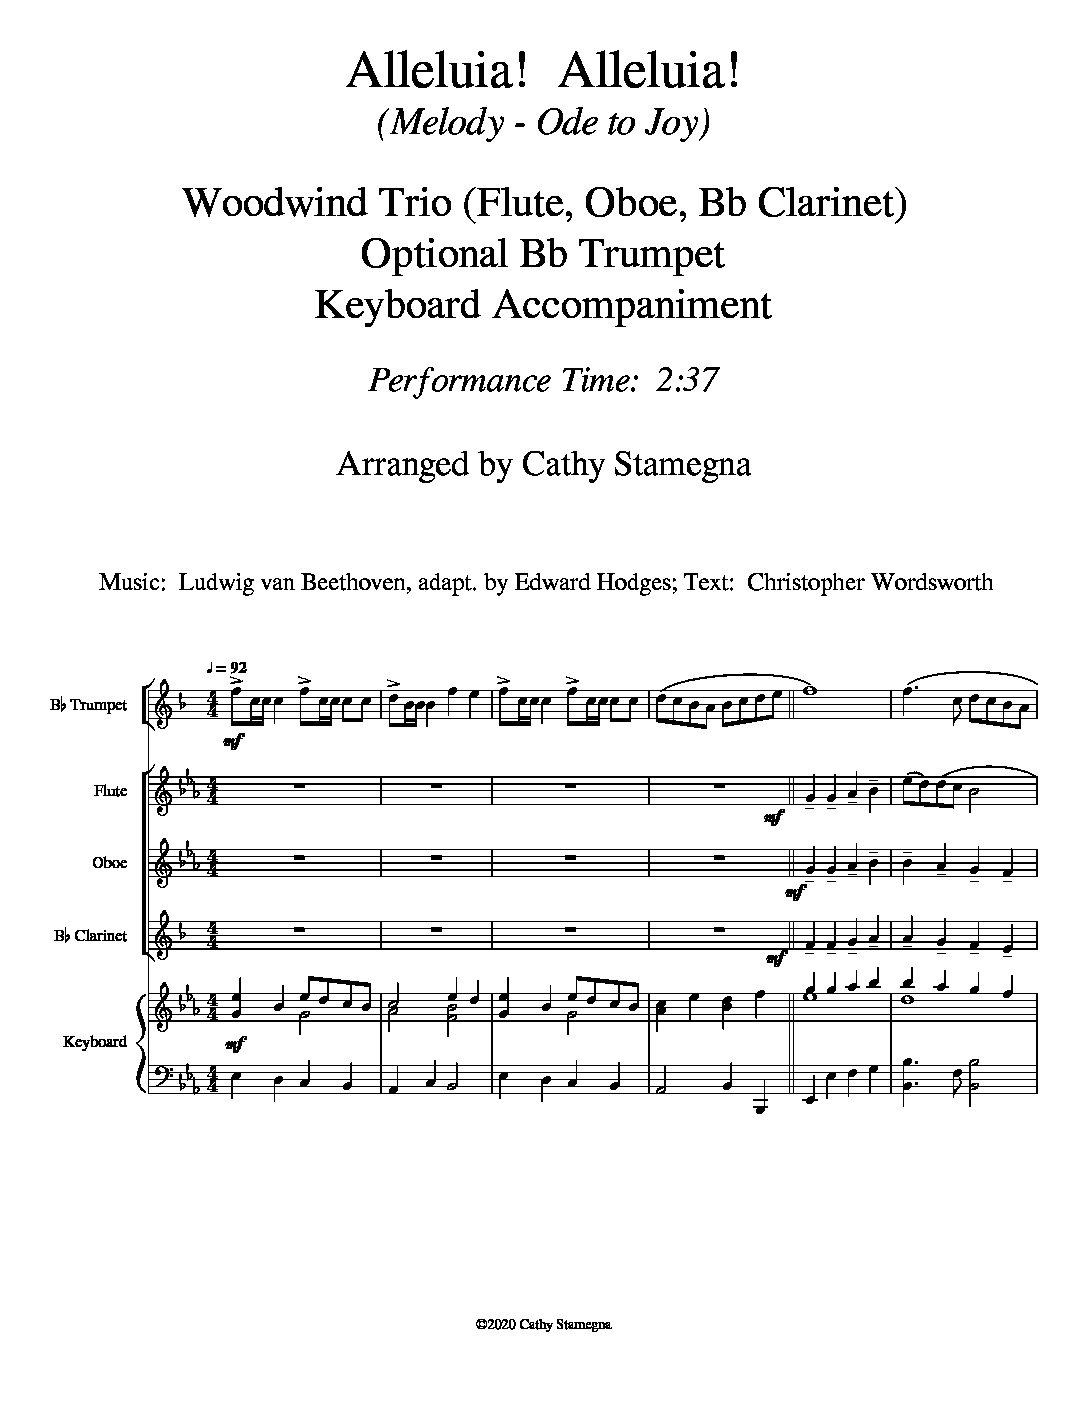 Alleluia! Alleluia! – (melody is Ode to Joy) – Woodwind Trio